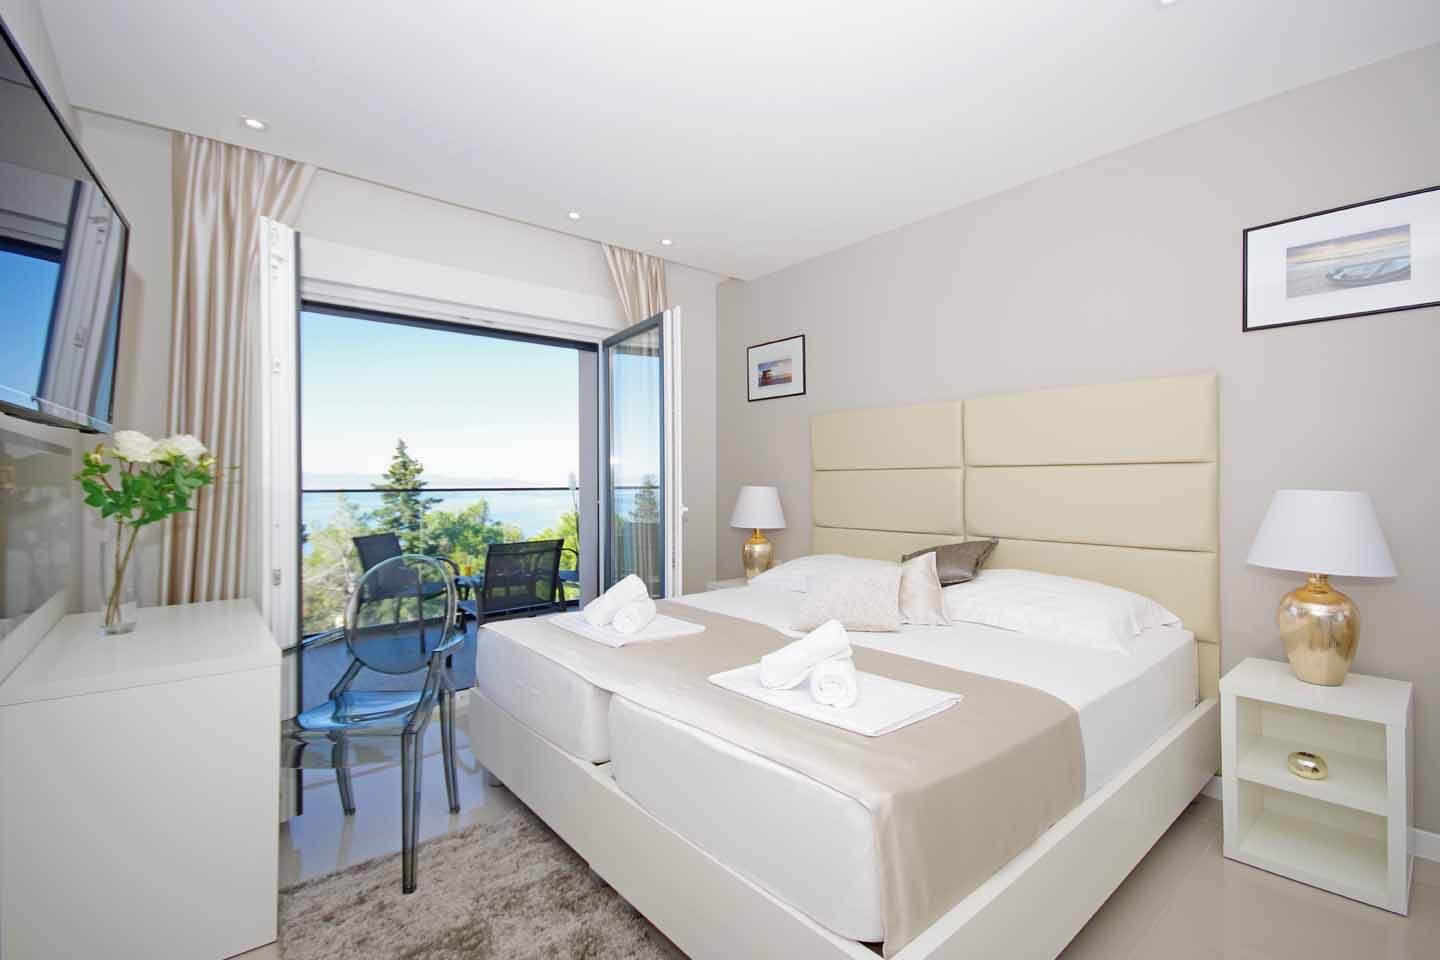 Double bedroom with television and balcony